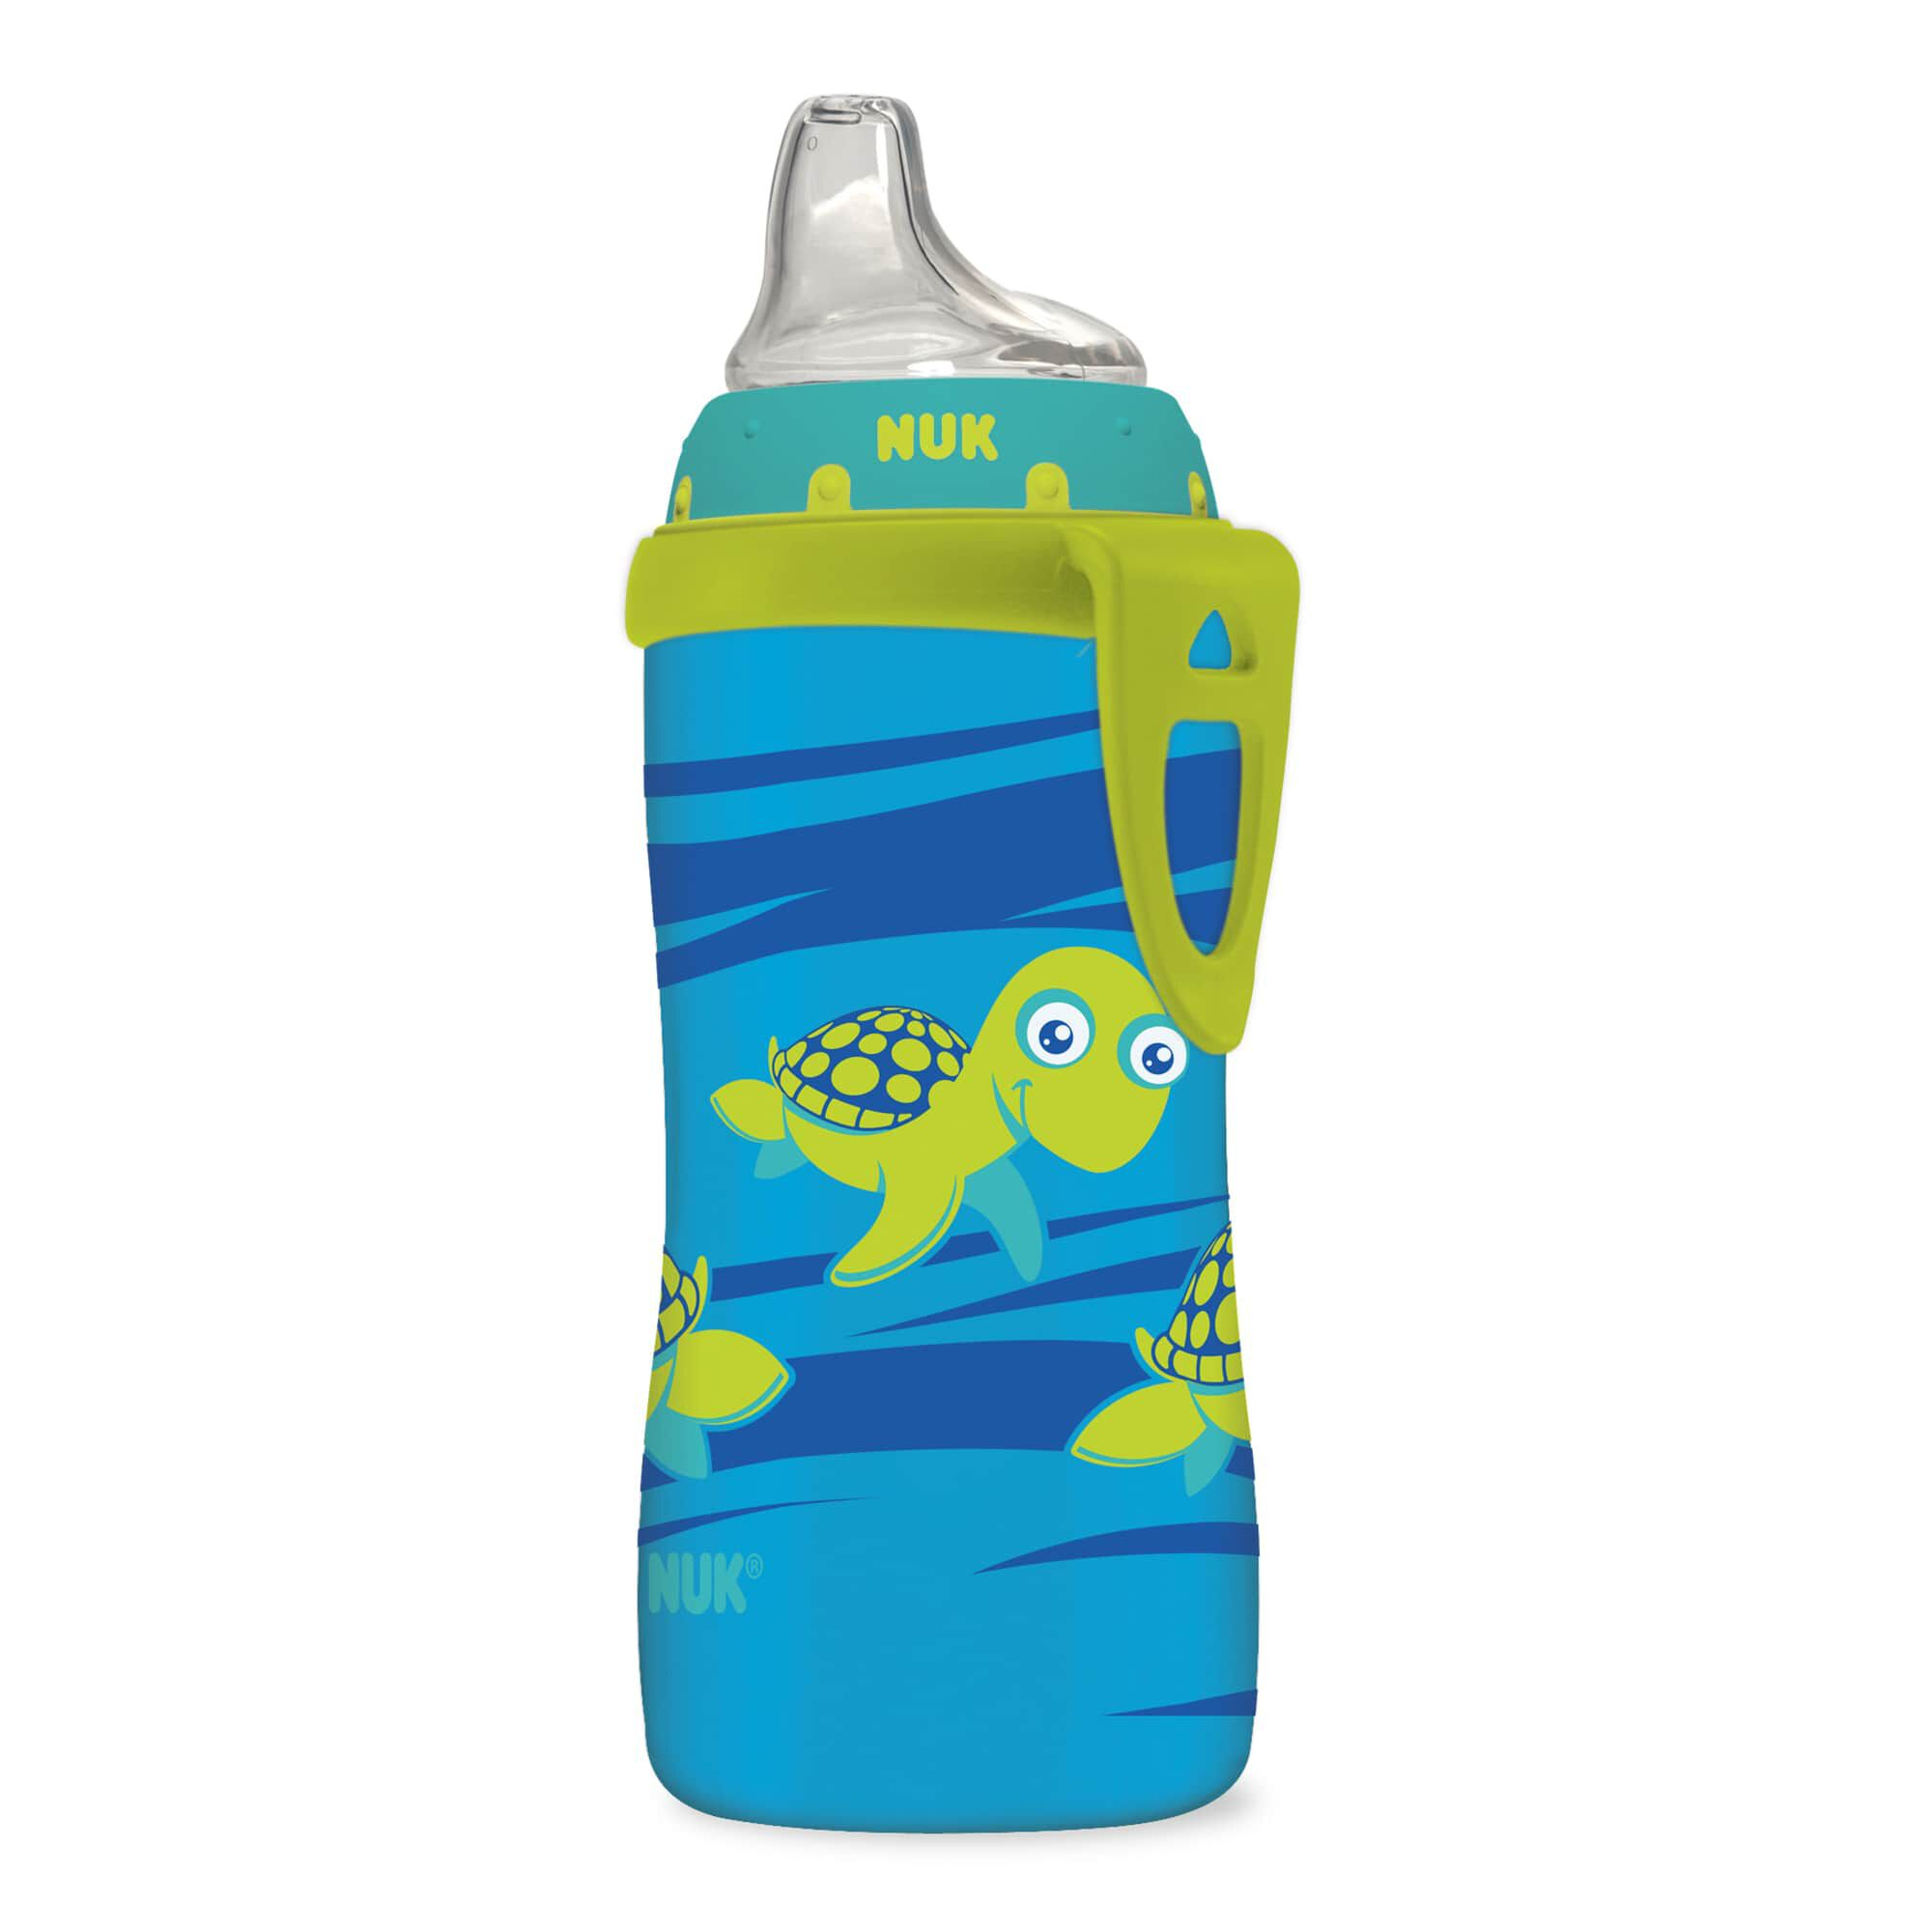 Nuk active sippy cups